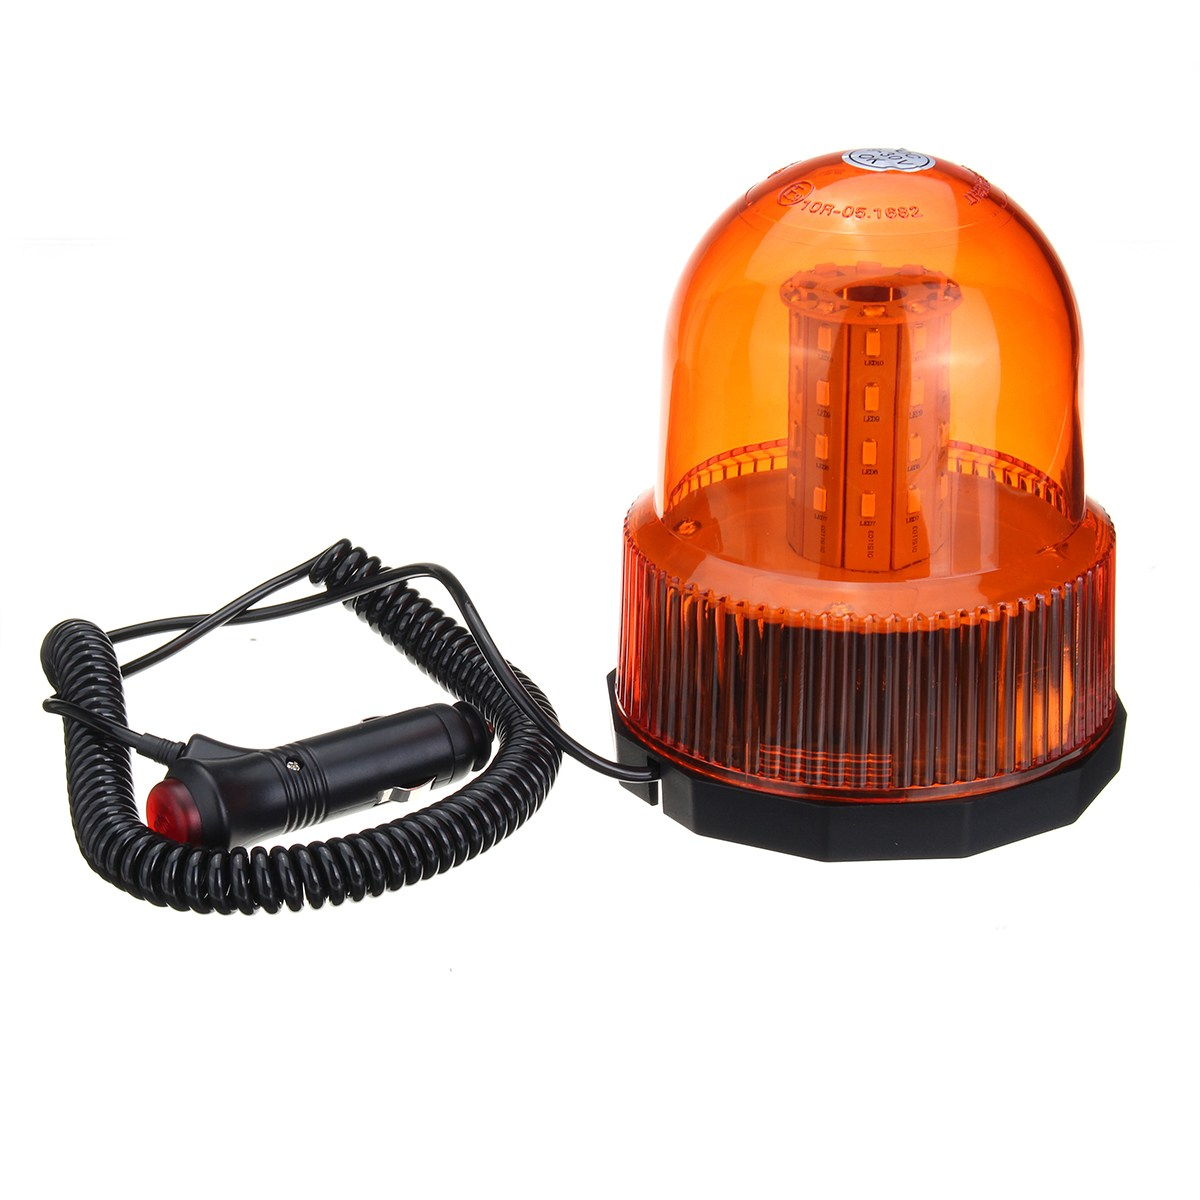 все цены на Safurance 40 LED Magnetic Mount Rotating Flashing Amber Dome Beacon Recovery Warning Light Roadway Safety онлайн